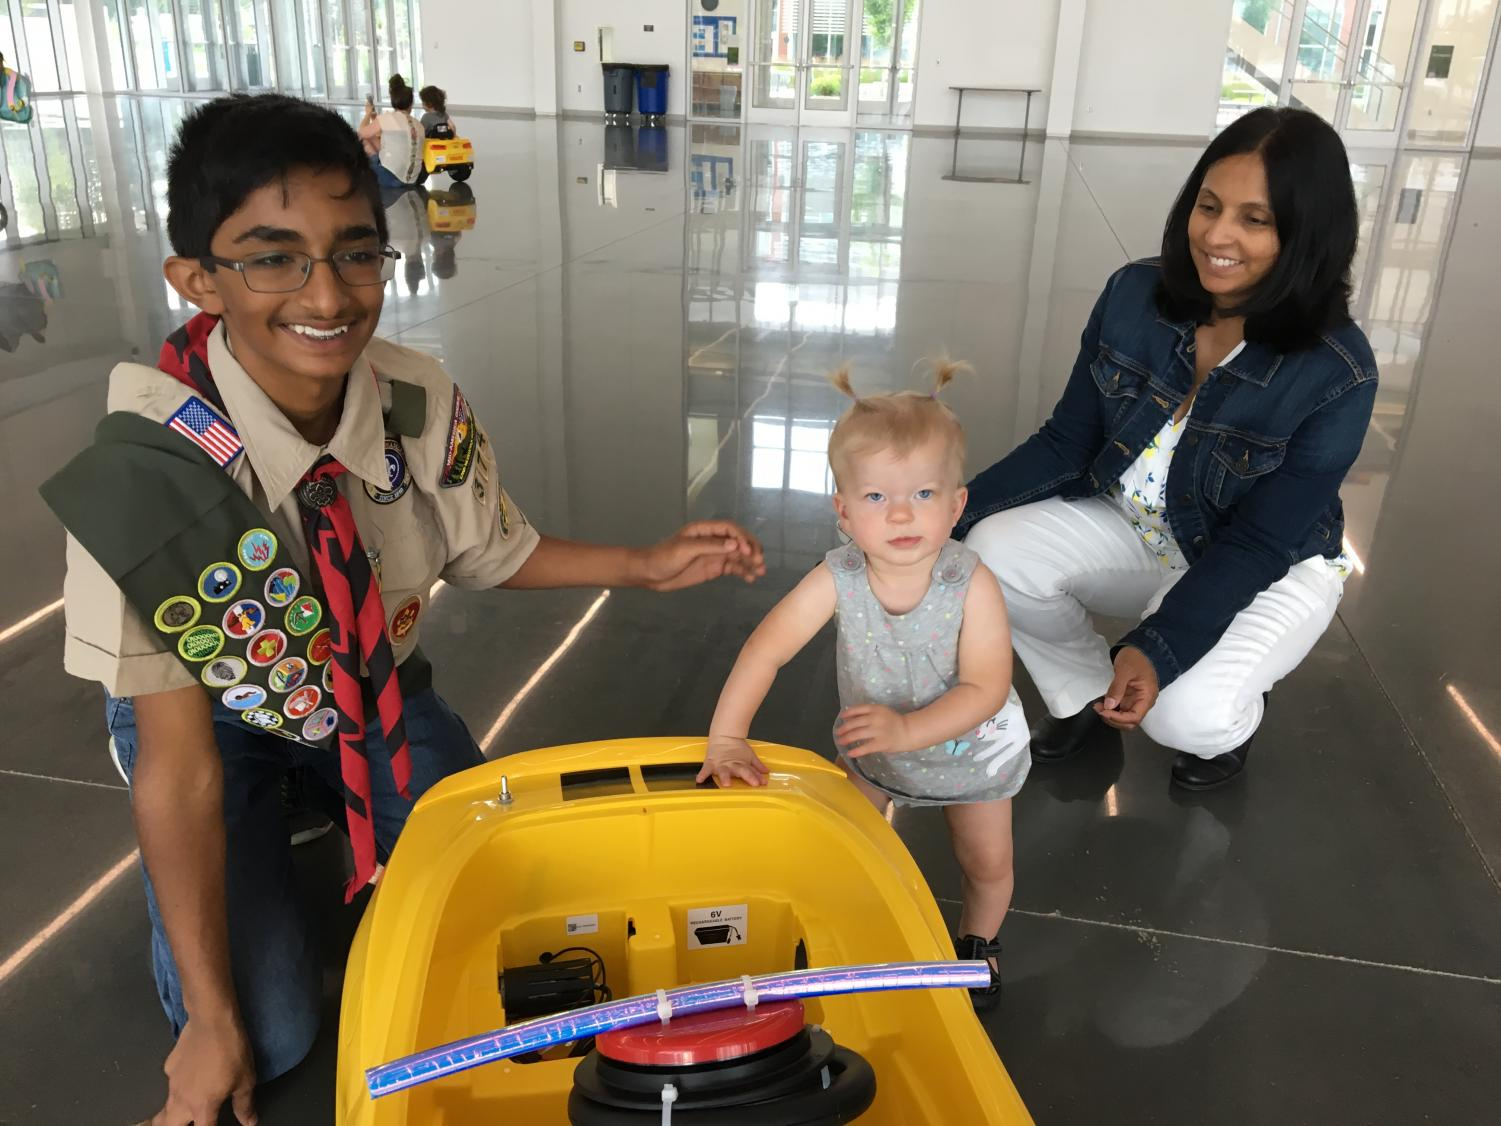 Fichadia poses with a toddler who has just reached her redesigned race car